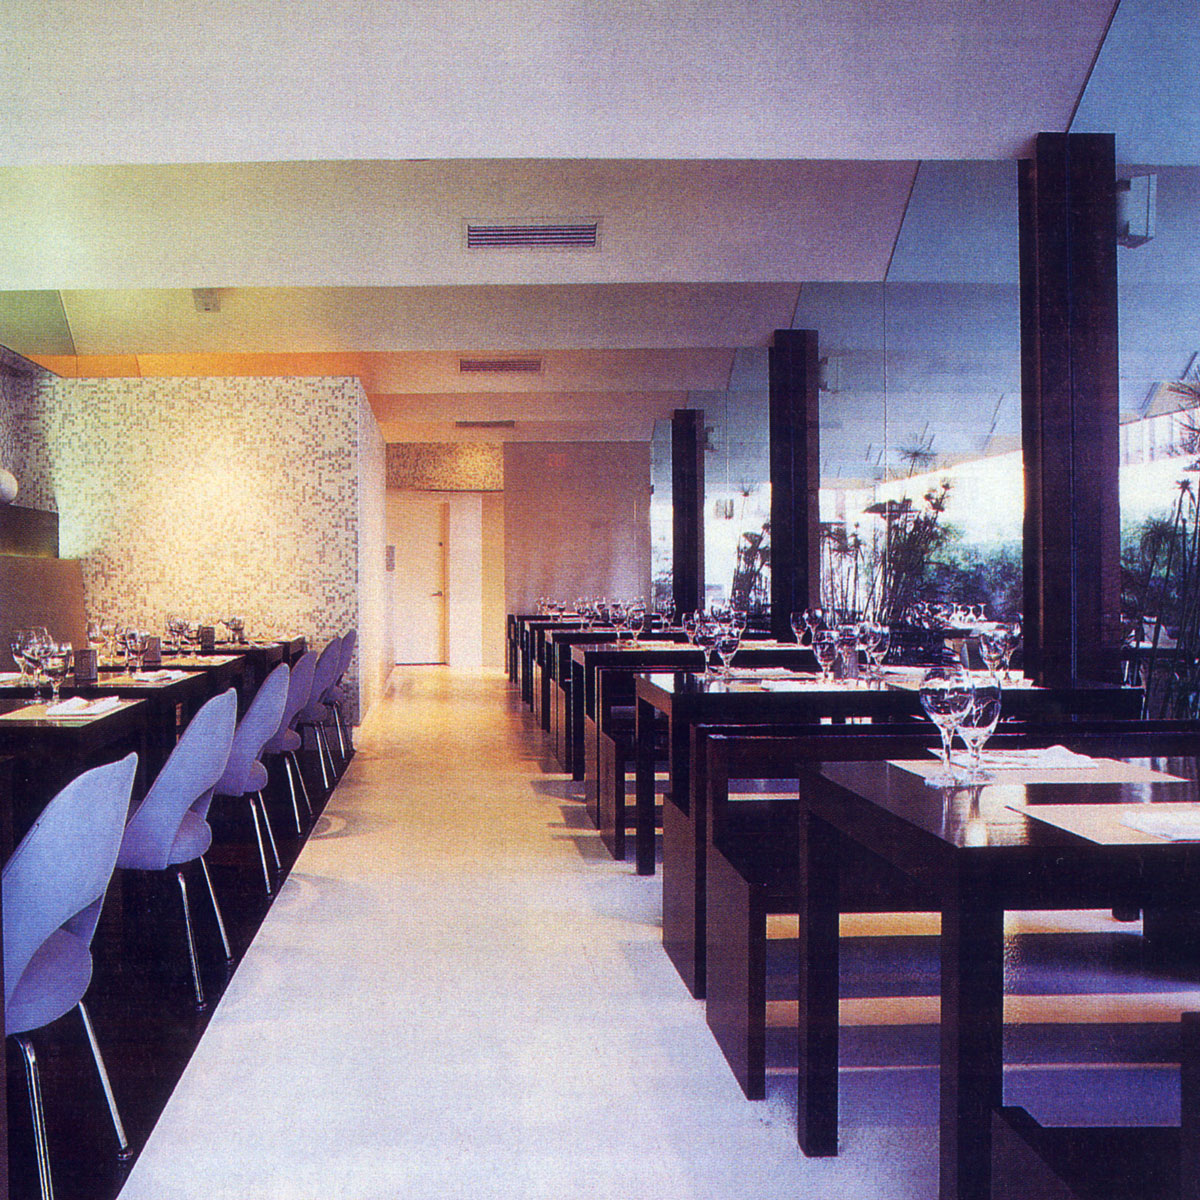 Restaurant los angeles interior design for Interior design los angeles